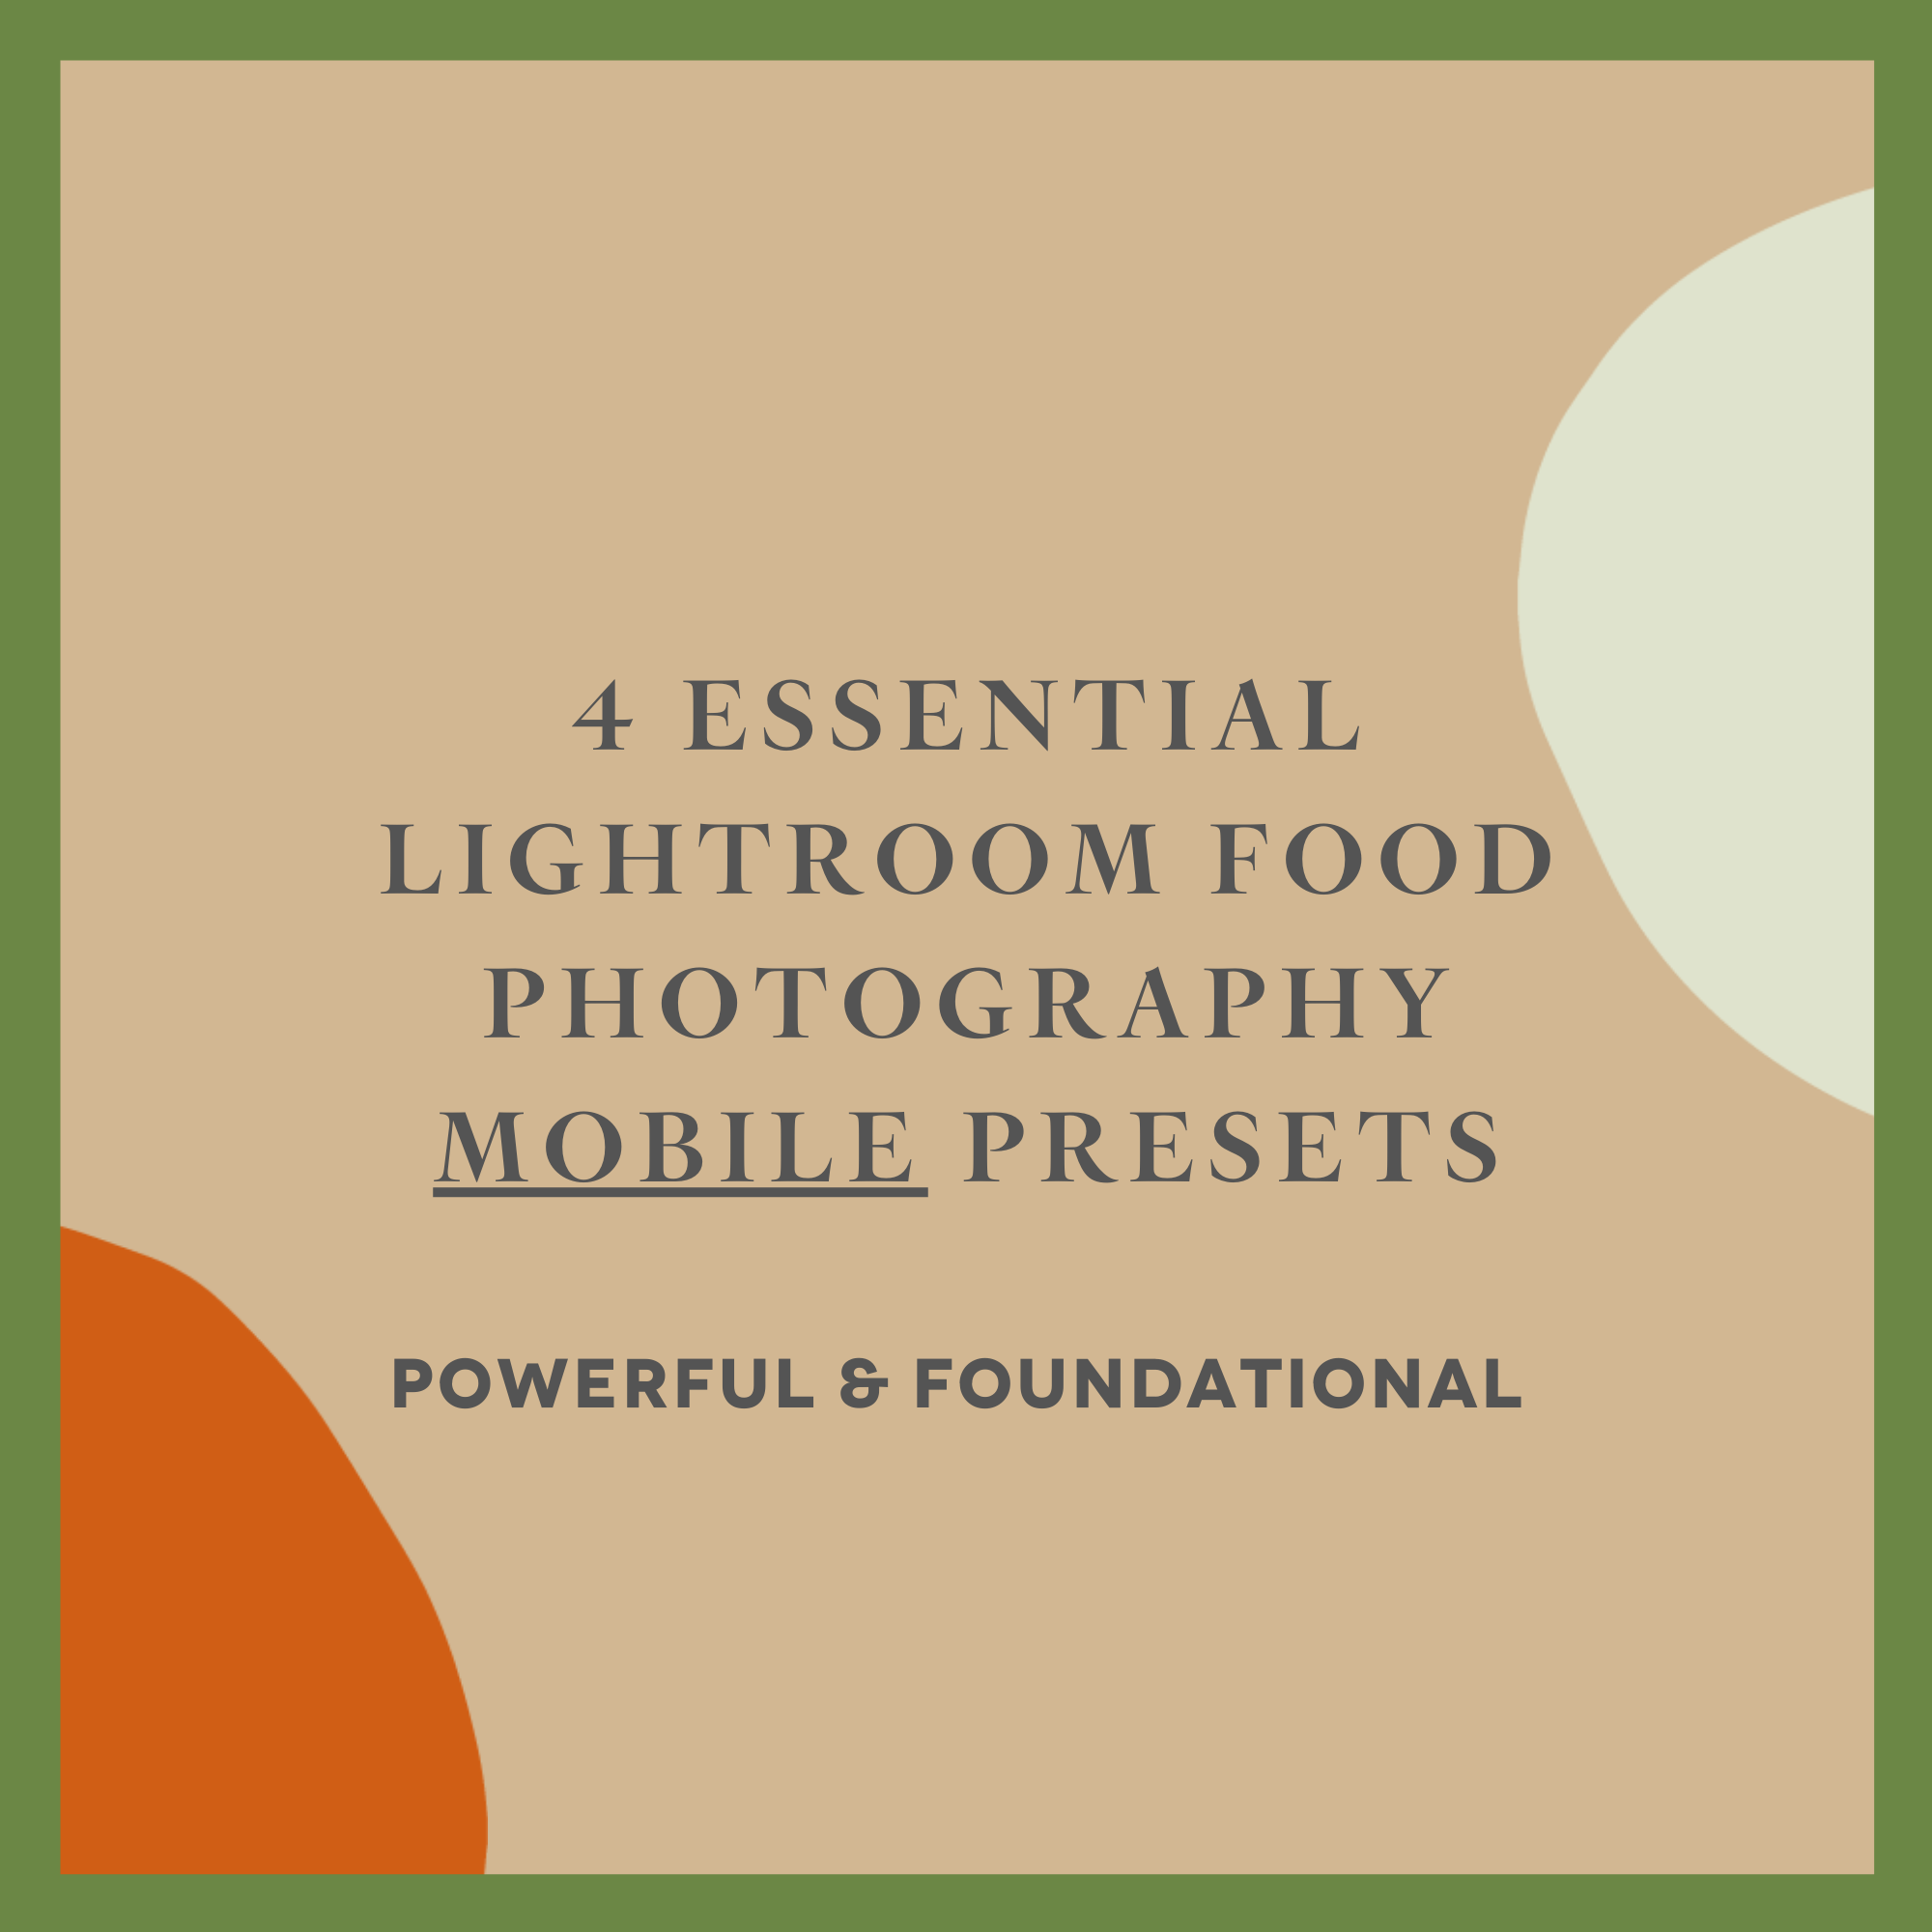 4 FOOD PHOTOGRAPHY LIGHTROOM PRESETS FOR MOBILE — a vegan food photography  and styling blog